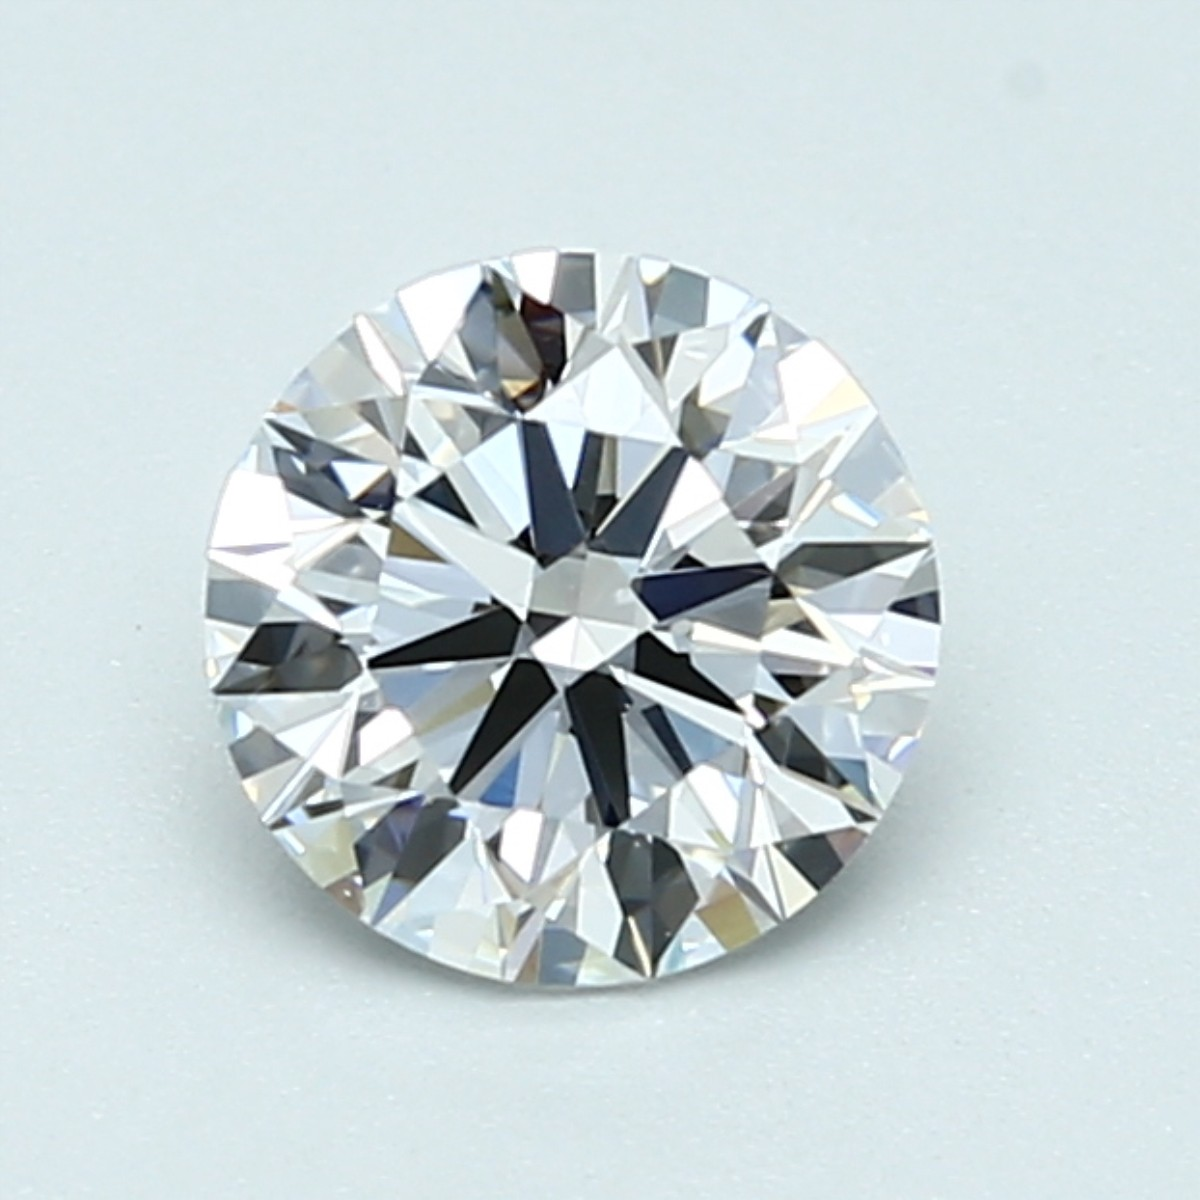 1 Carat D Color Diamond with None Fluorescence